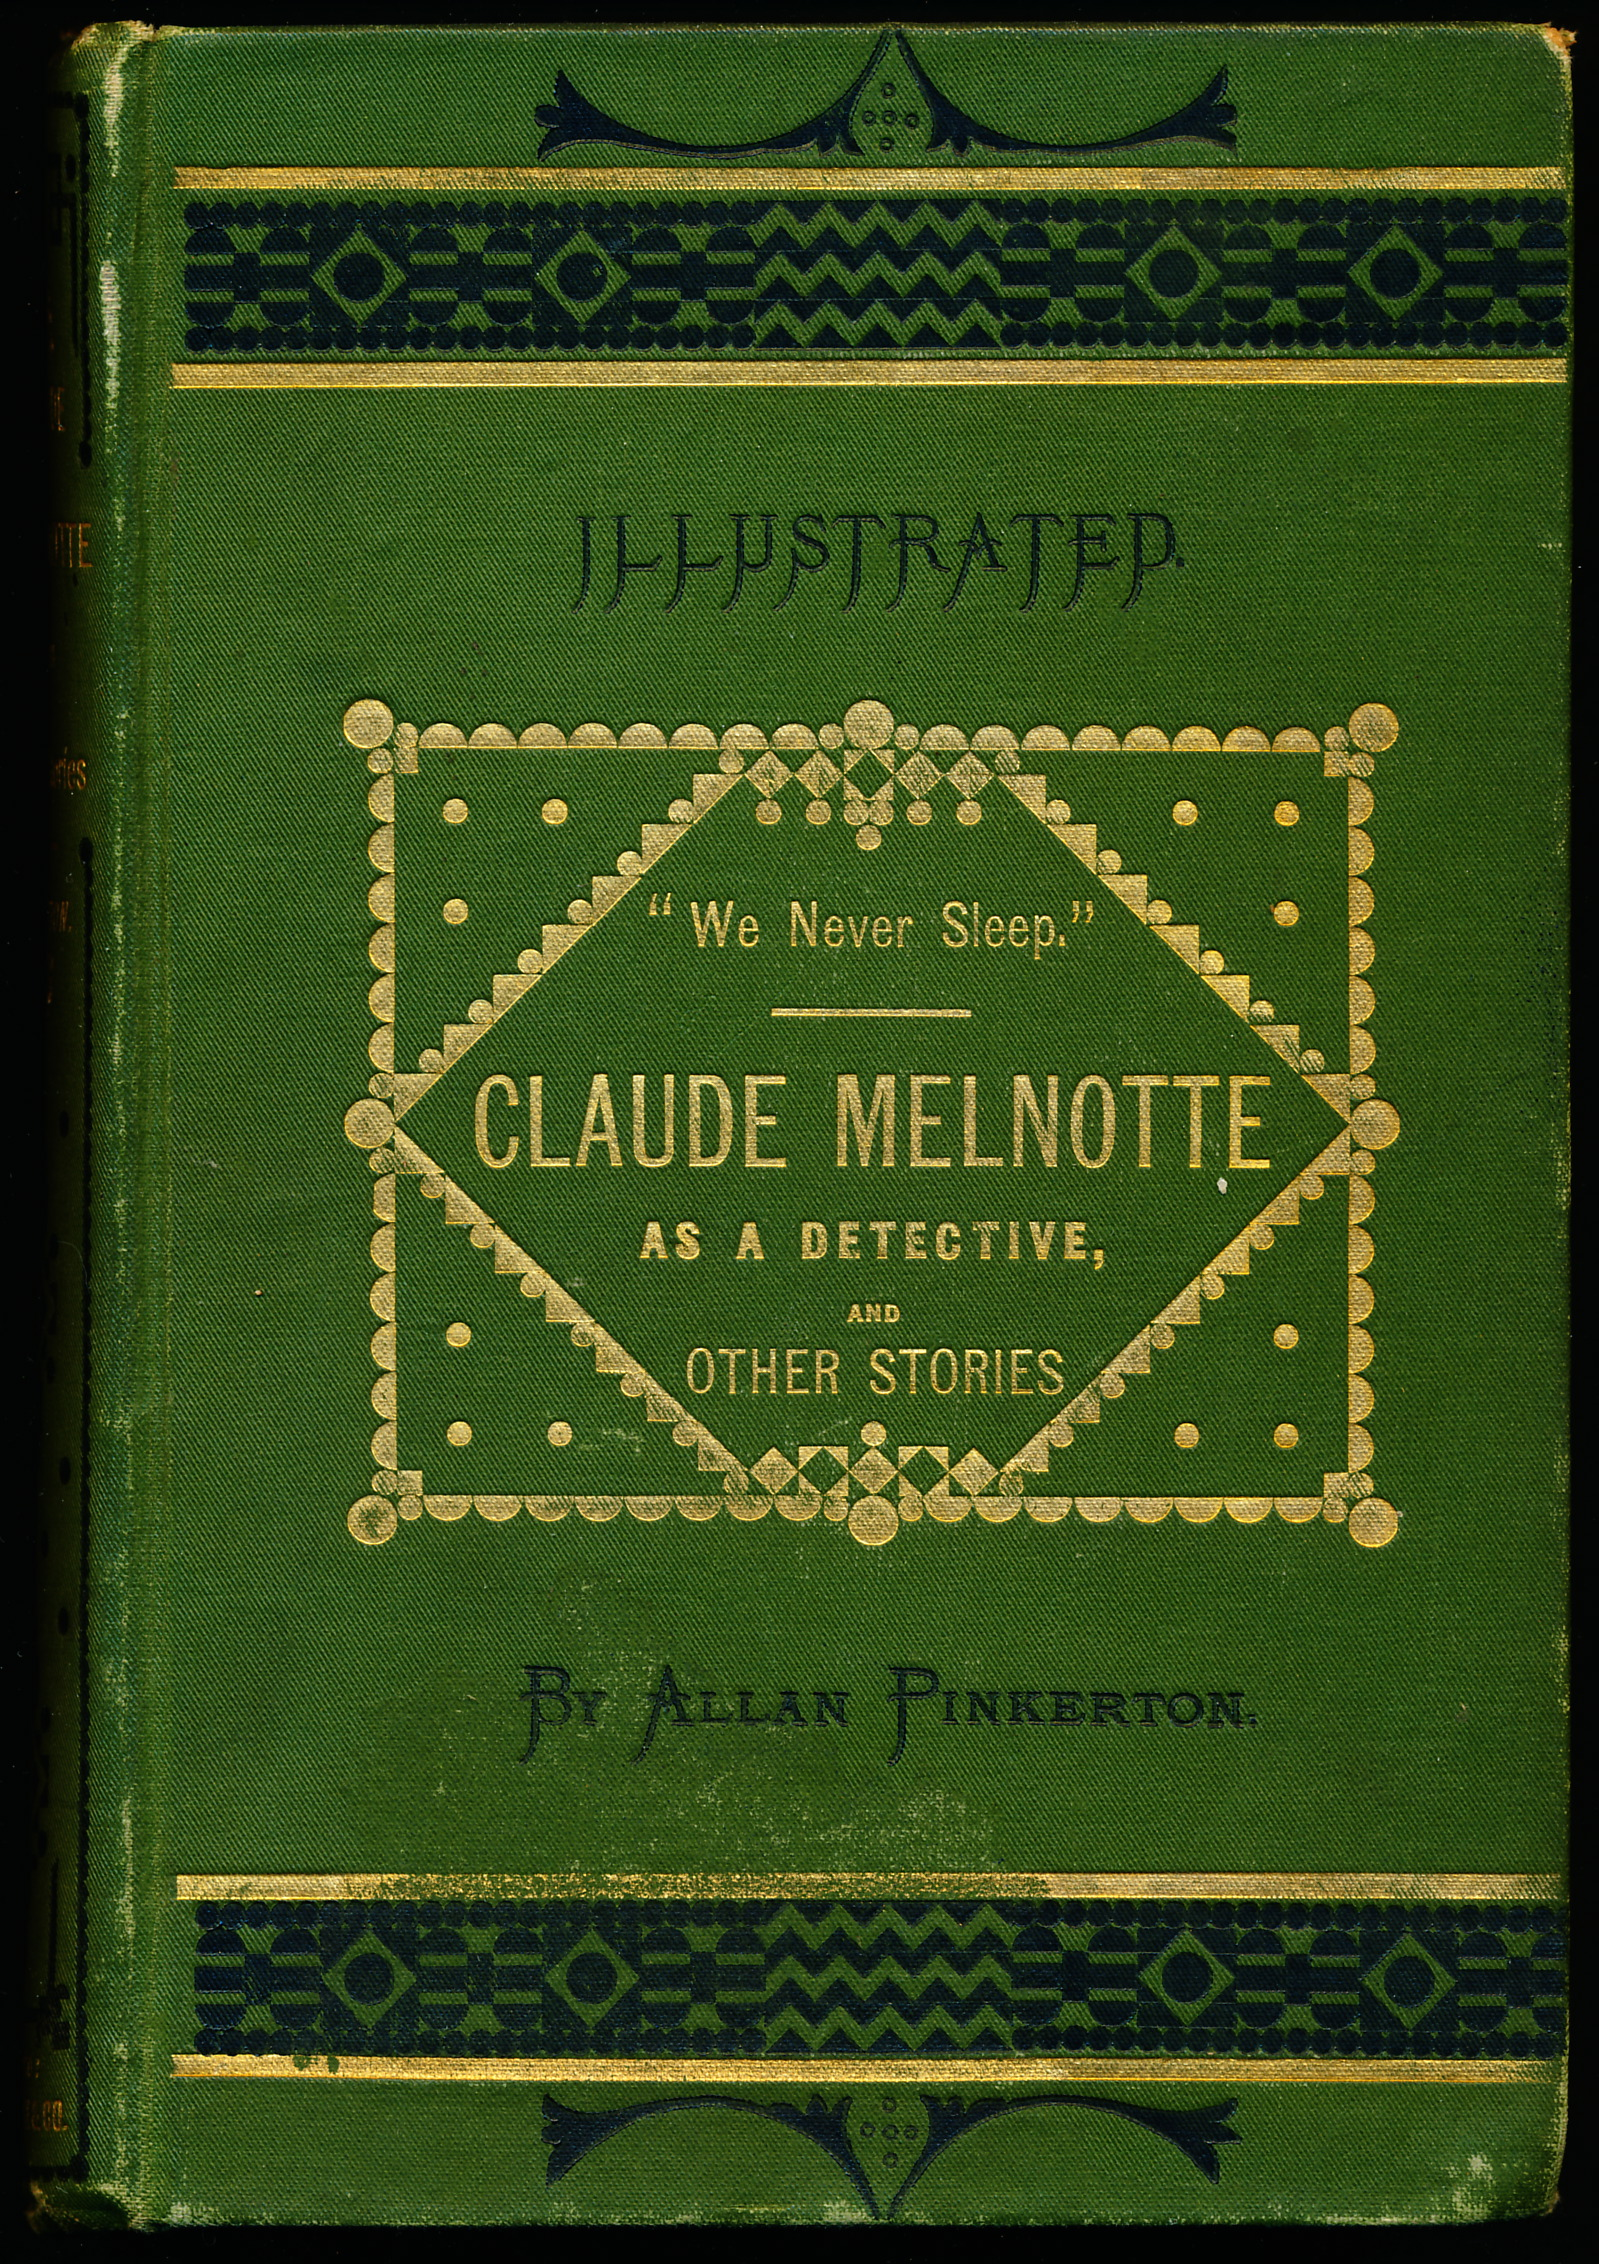 Image for CLAUDE MELNOTTE AS A DETECTIVE AND OTHER STORIES.